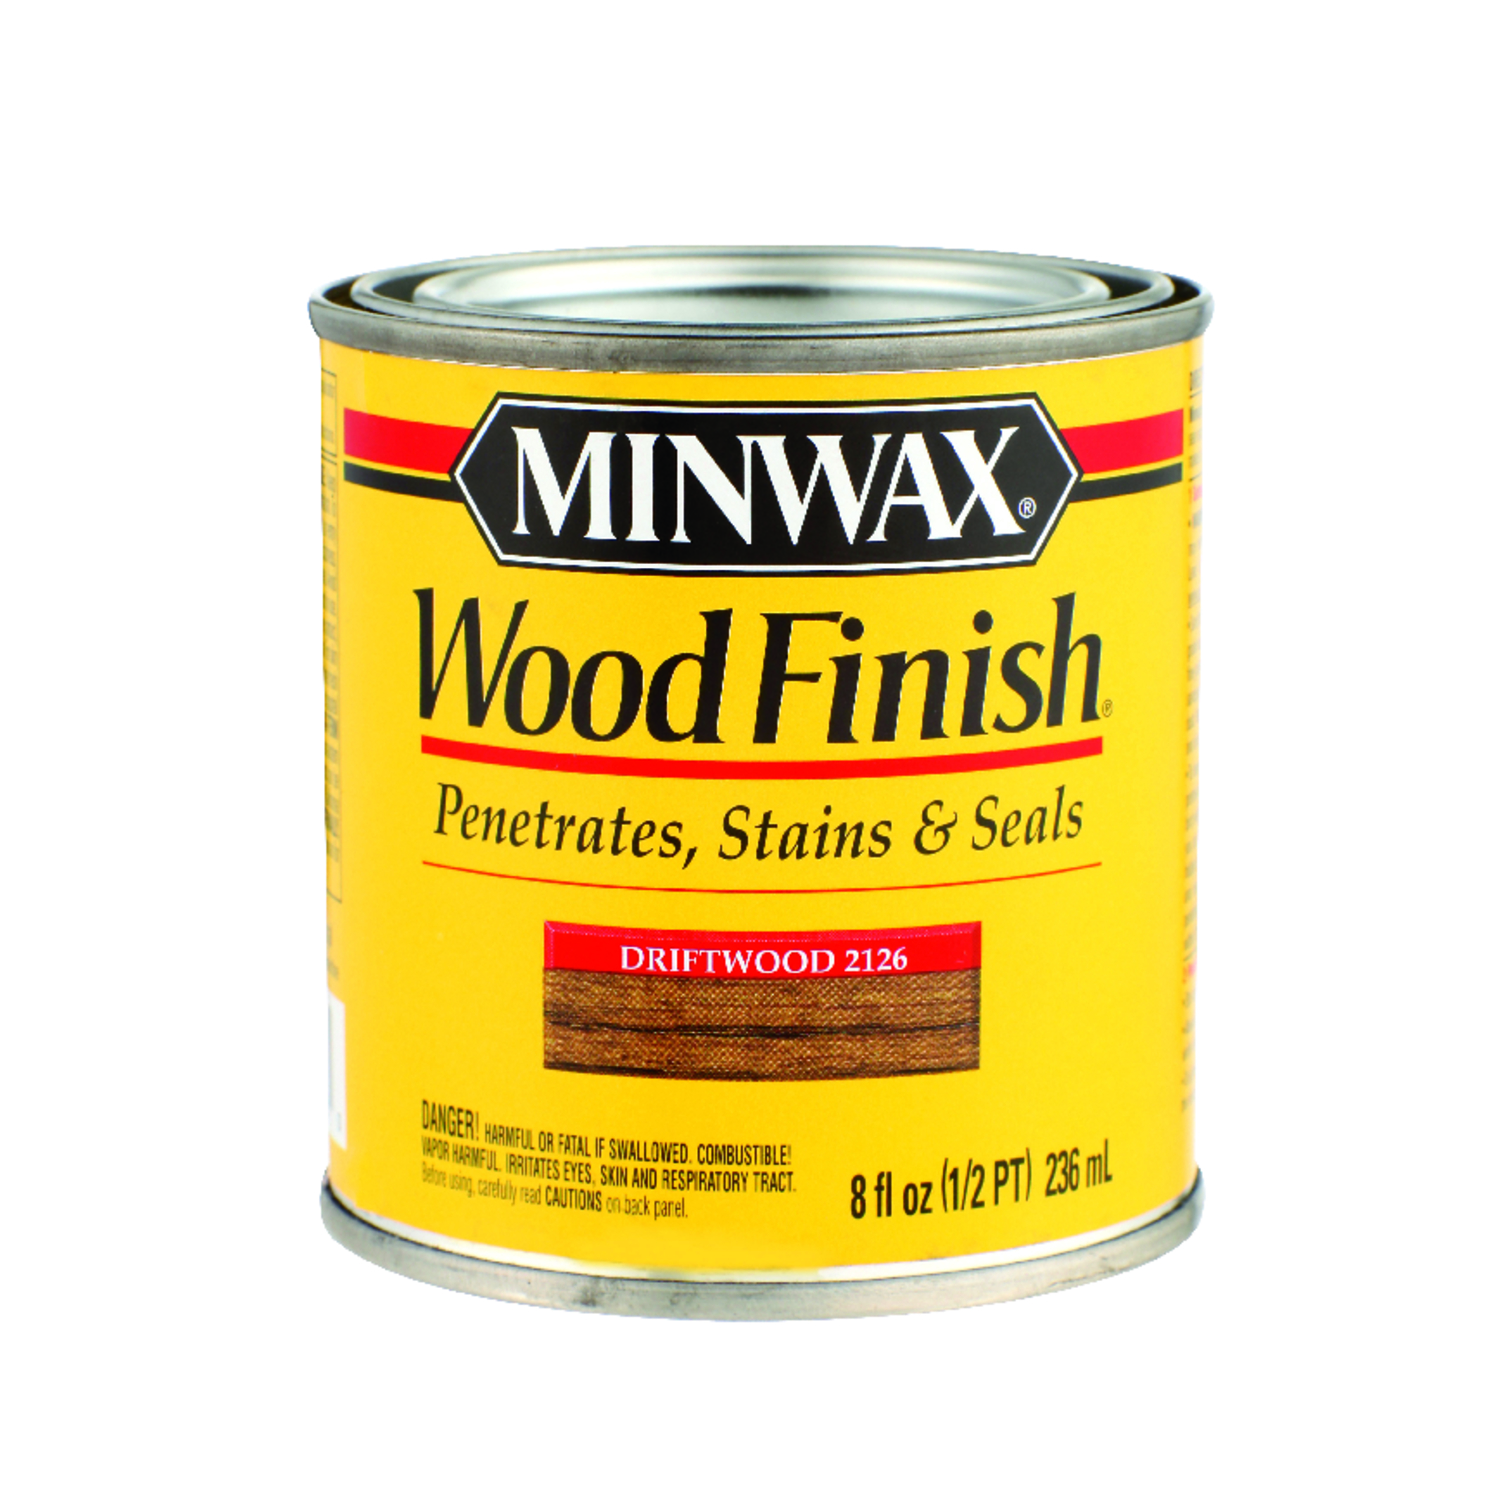 Minwax  Wood Finish  Semi-Transparent  Driftwood  Oil-Based  Oil  Wood Stain  0.5 pt.